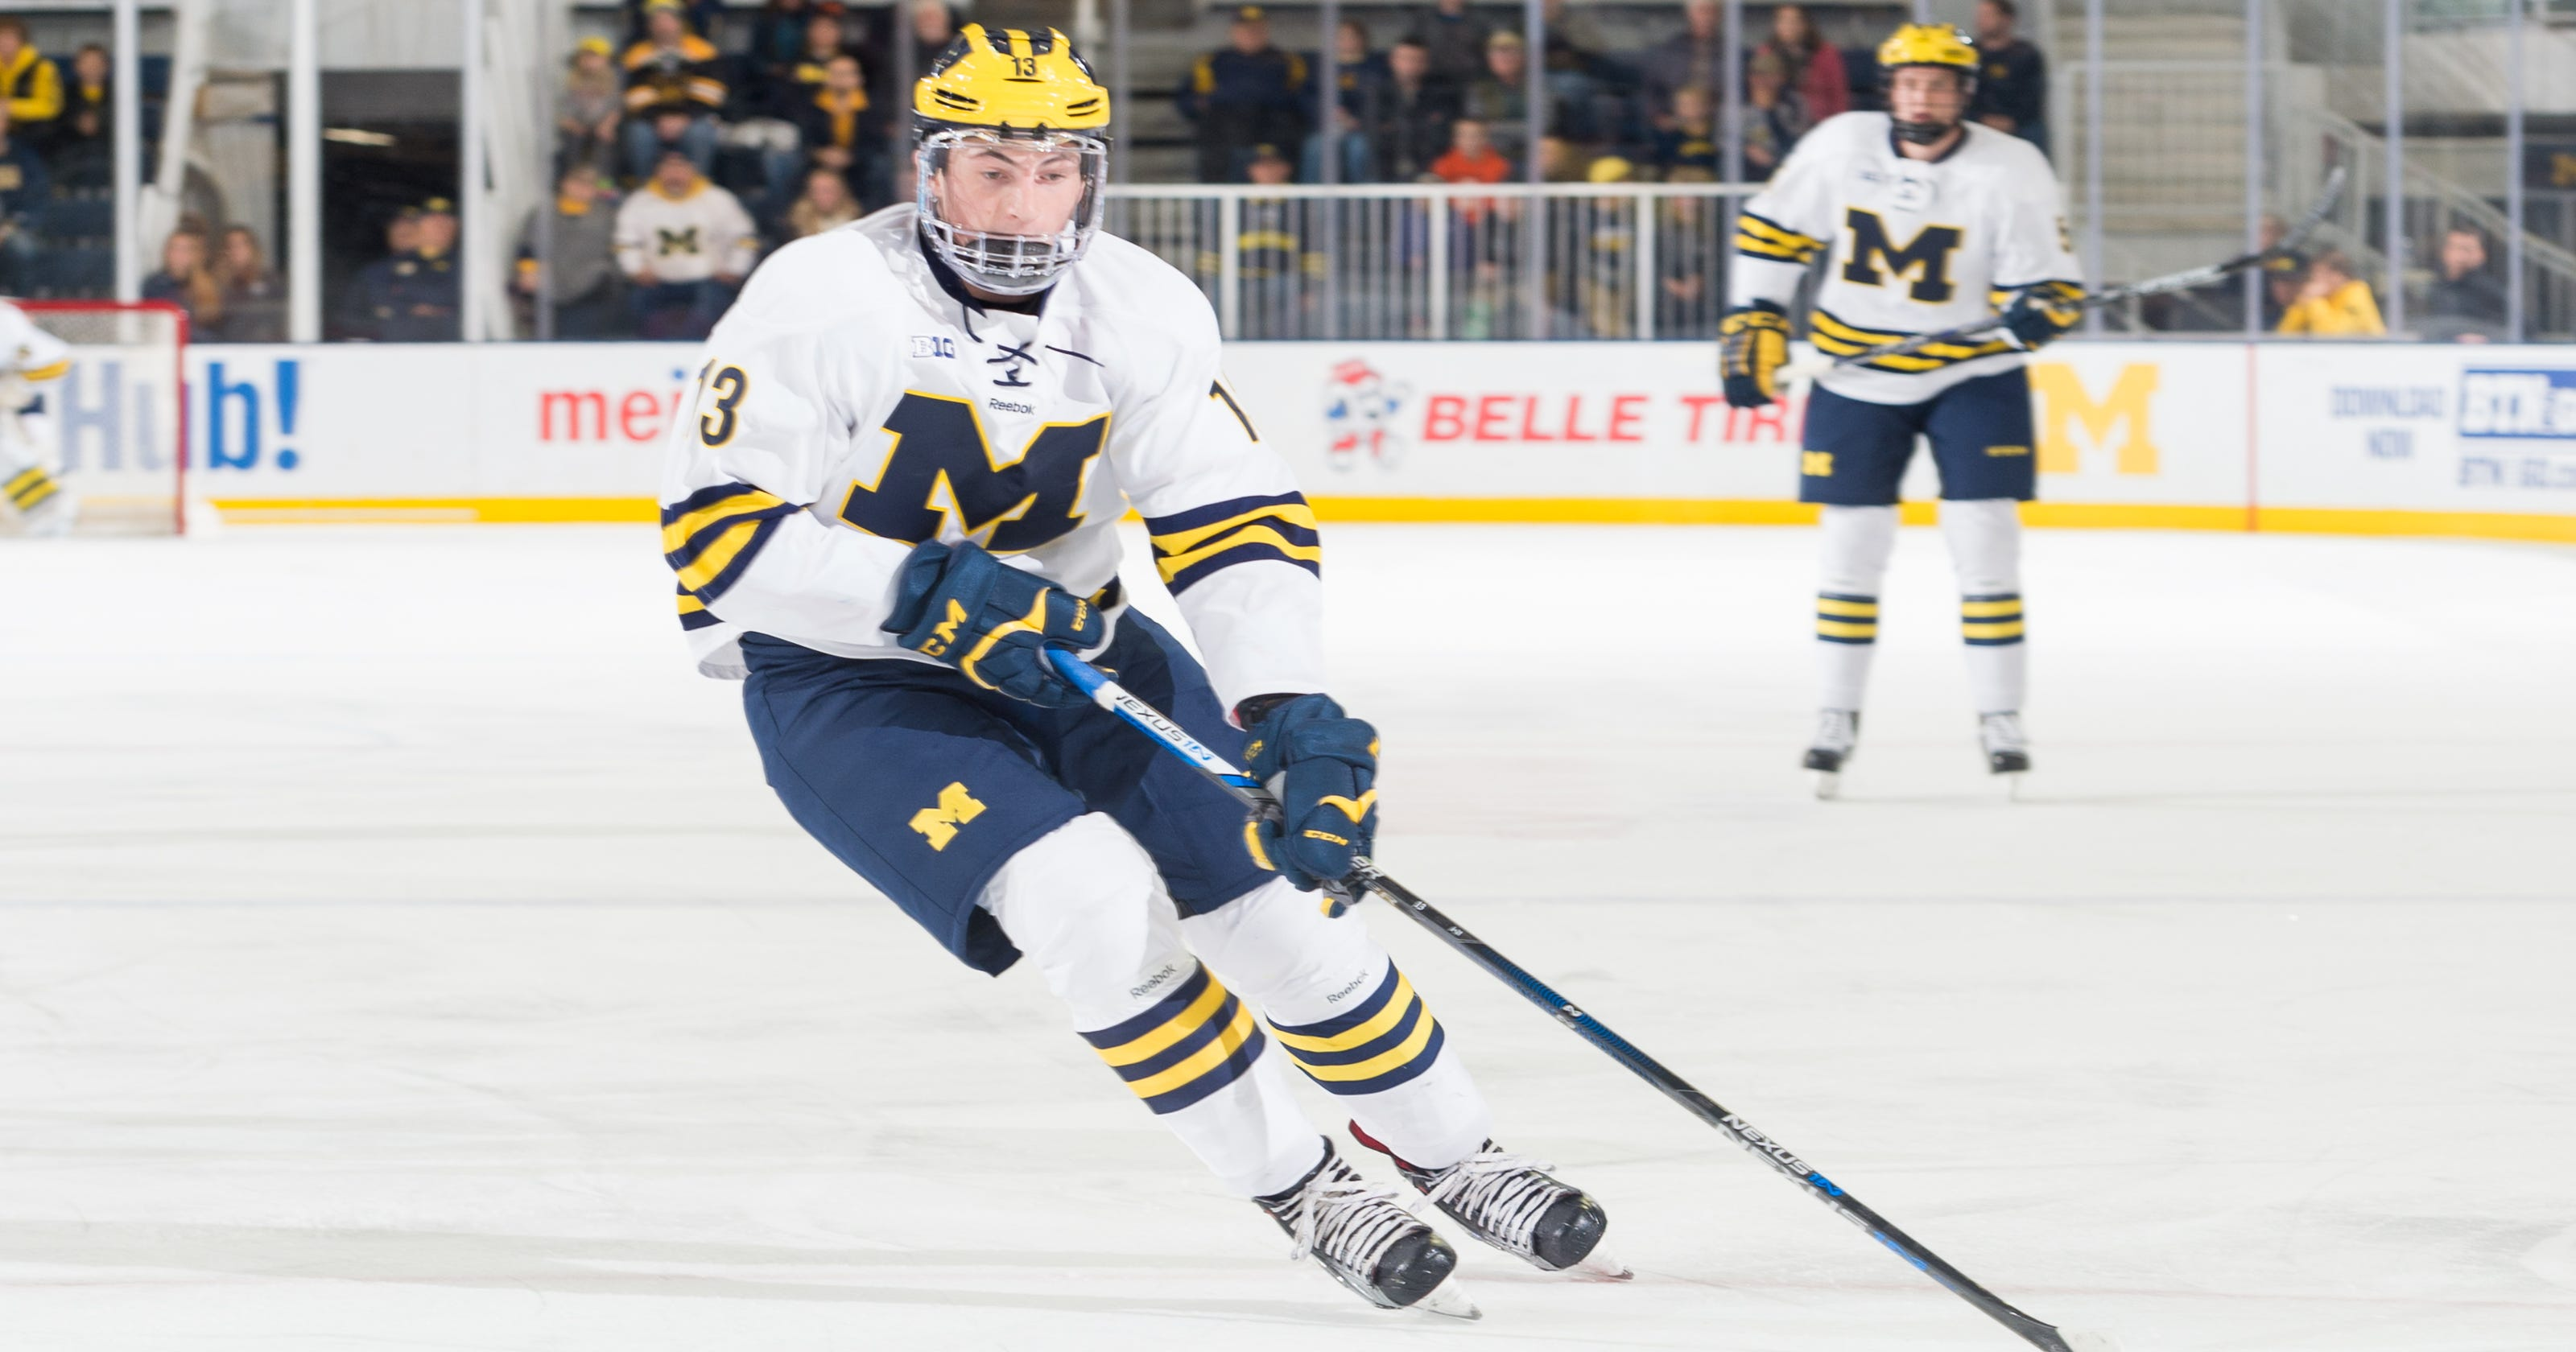 brand new d679d 58fb3 Michigan defensemen Zach Werenski and Michael Downing turn pro